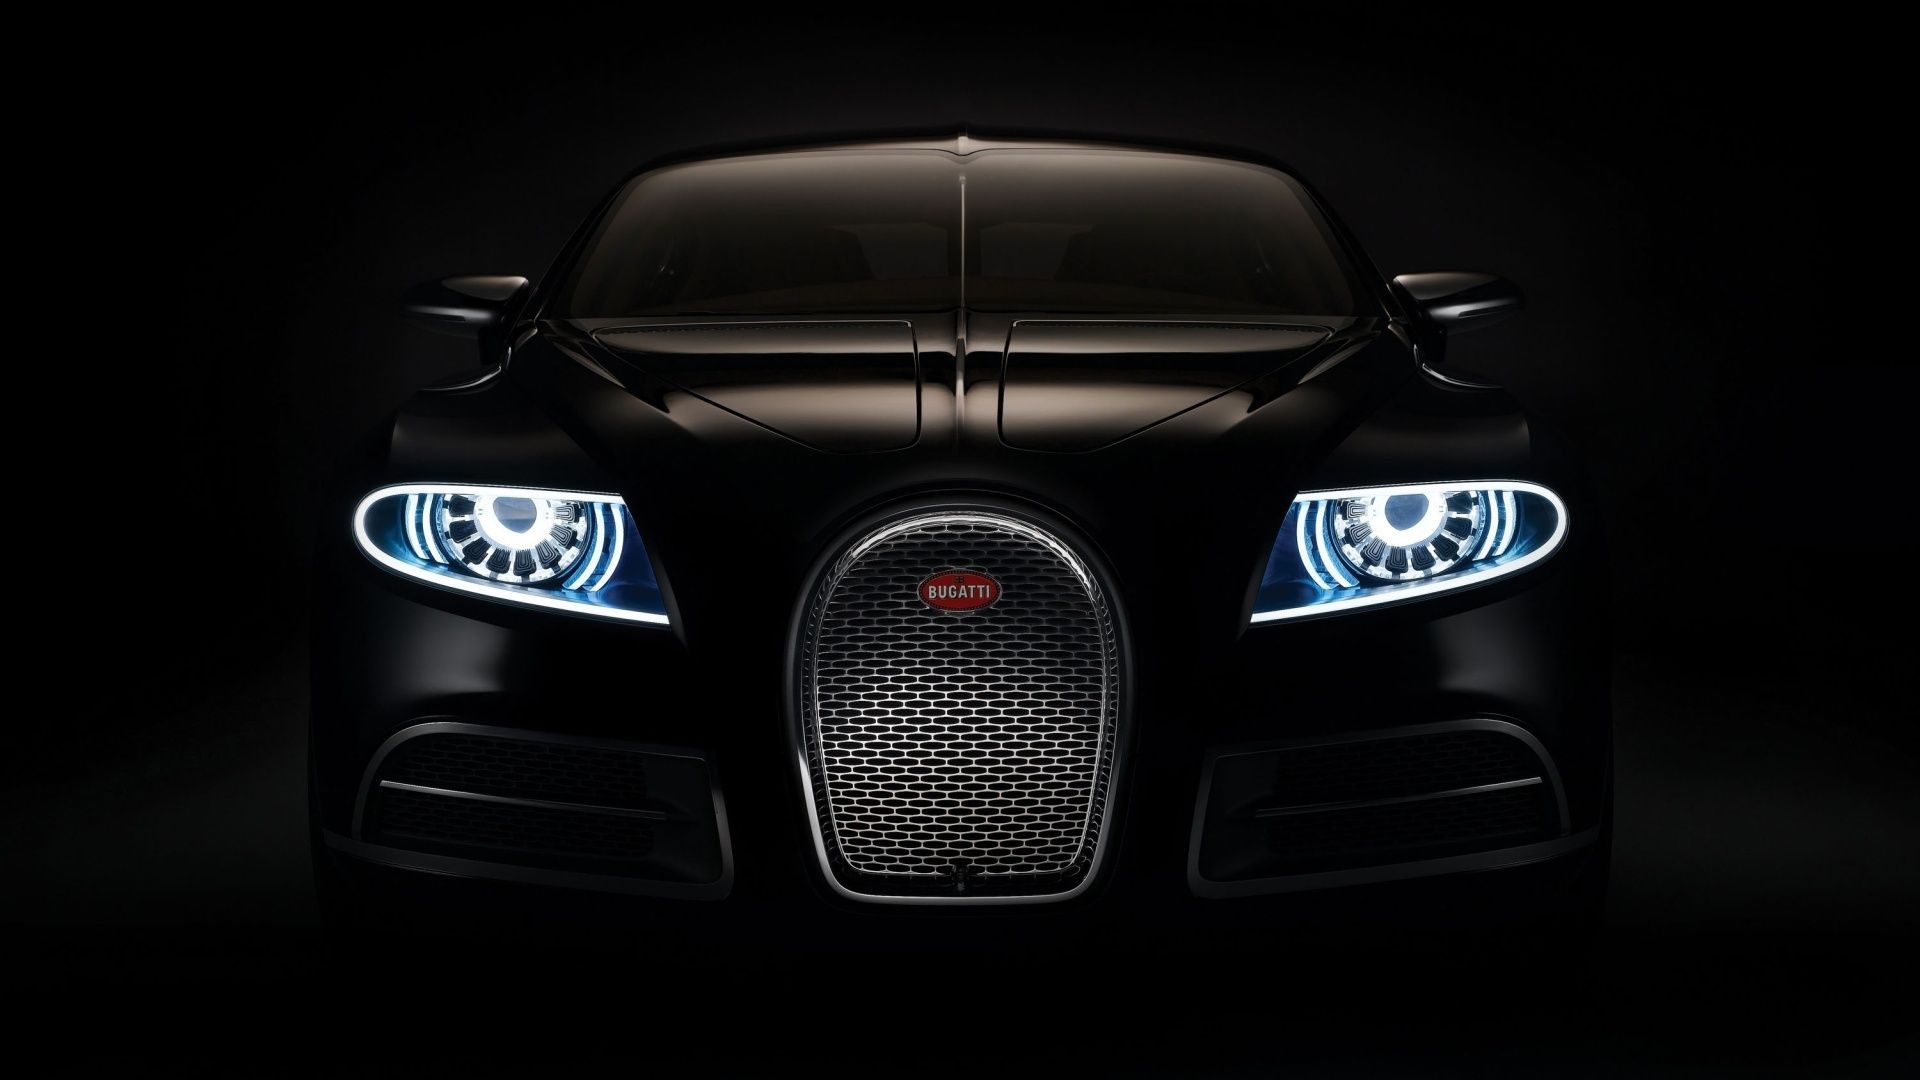 Gentil Images Of The Bugatti Galibier Concept Car